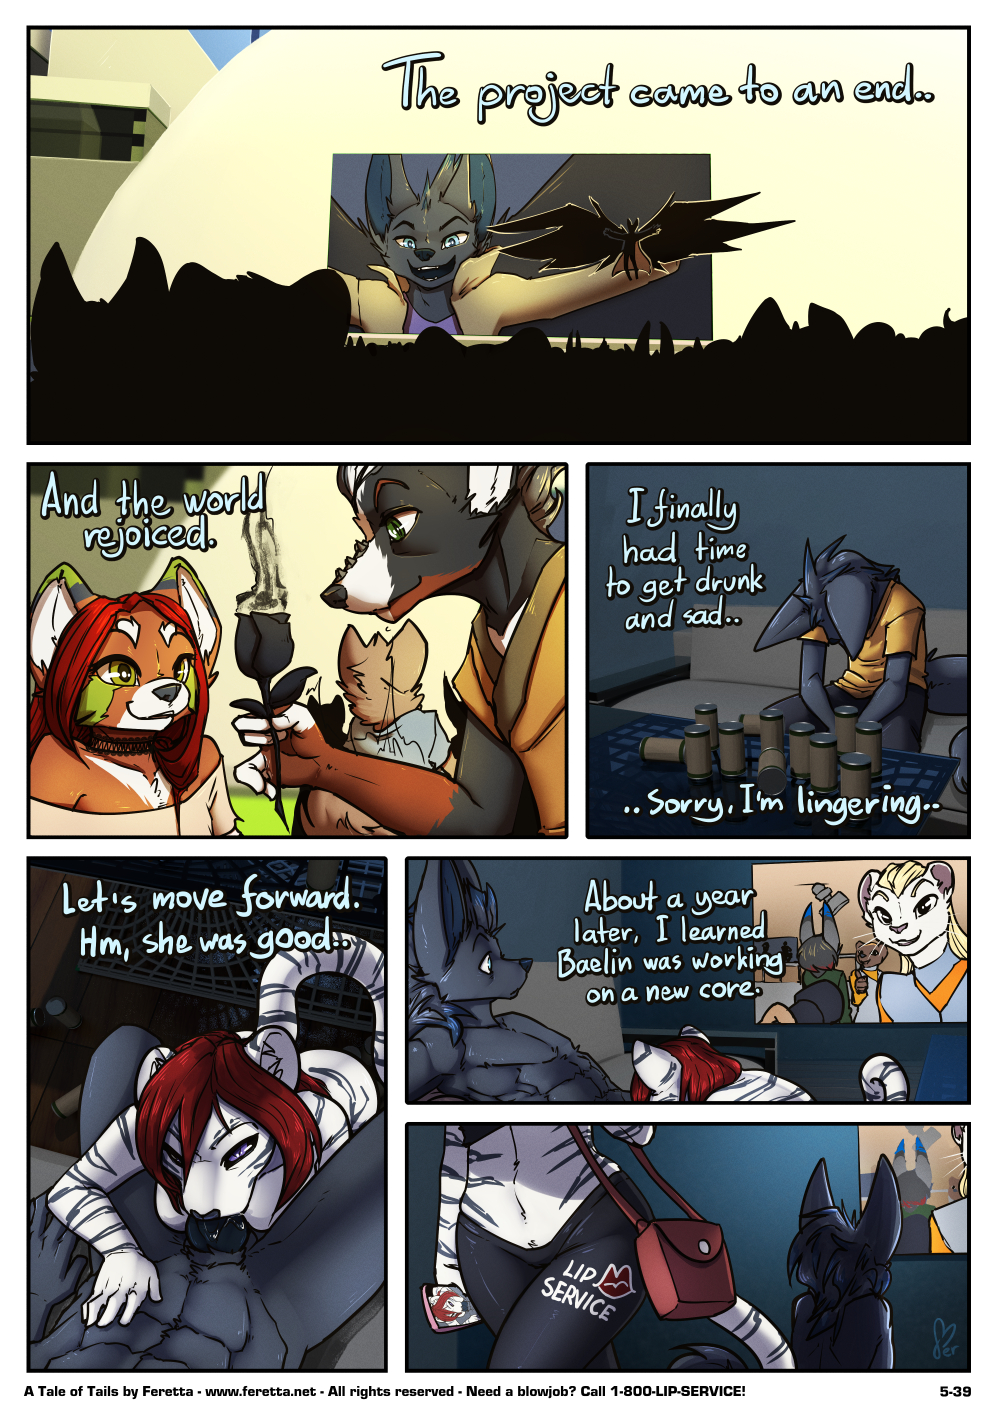 A Tale of Tails, 5-39